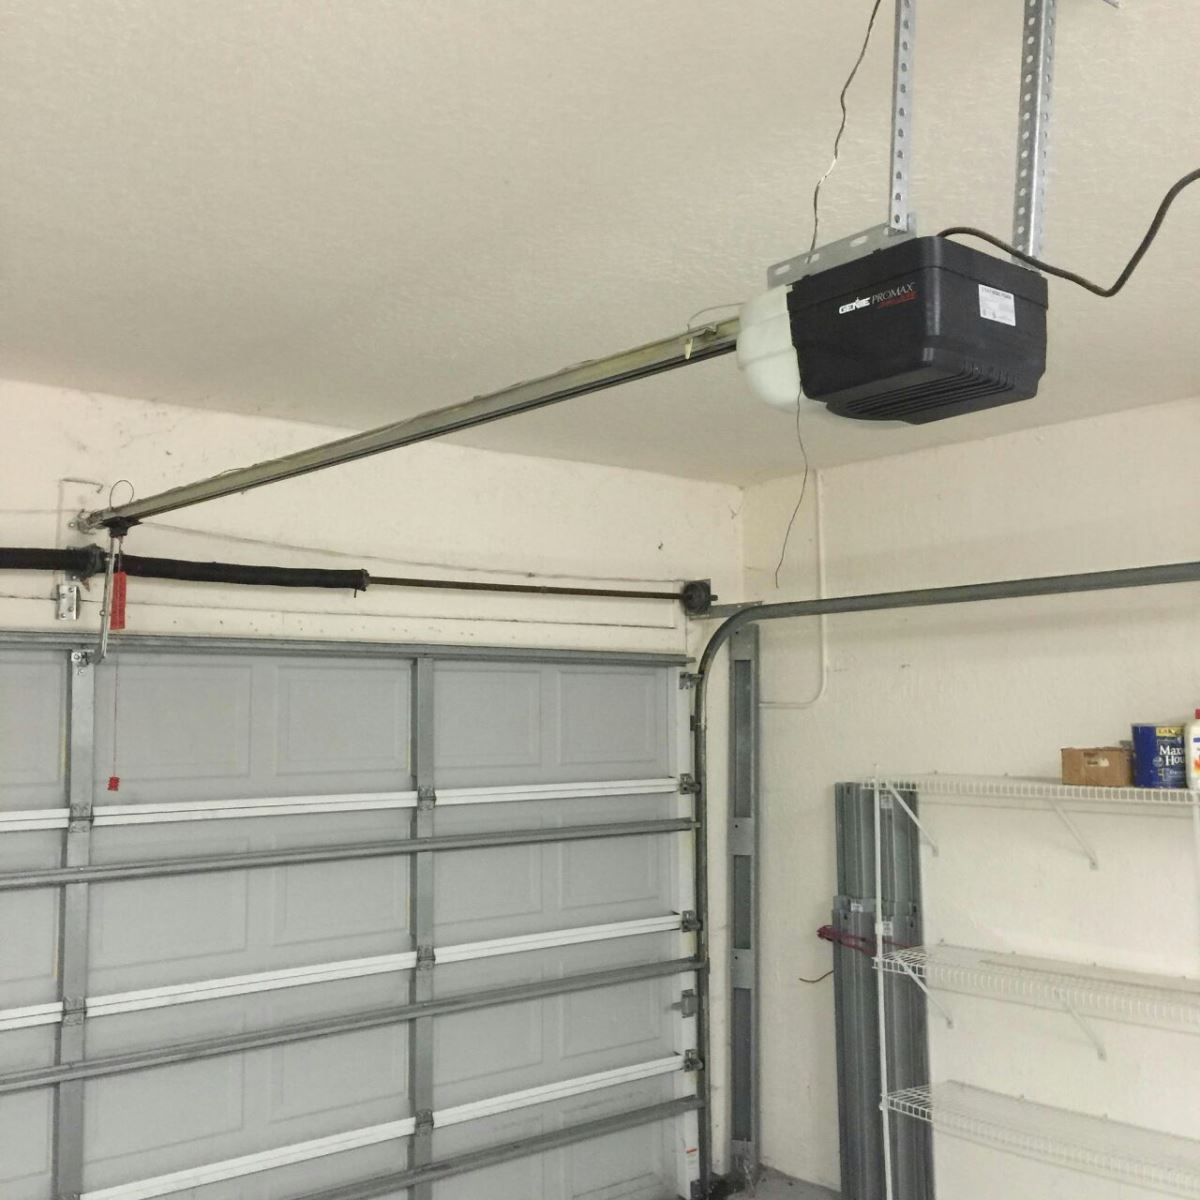 Gd Garage Door Repair Grafton Ma 508 474 5767 In 2020 Best Garage Door Opener Door Repair Garage Door Opener Troubleshooting